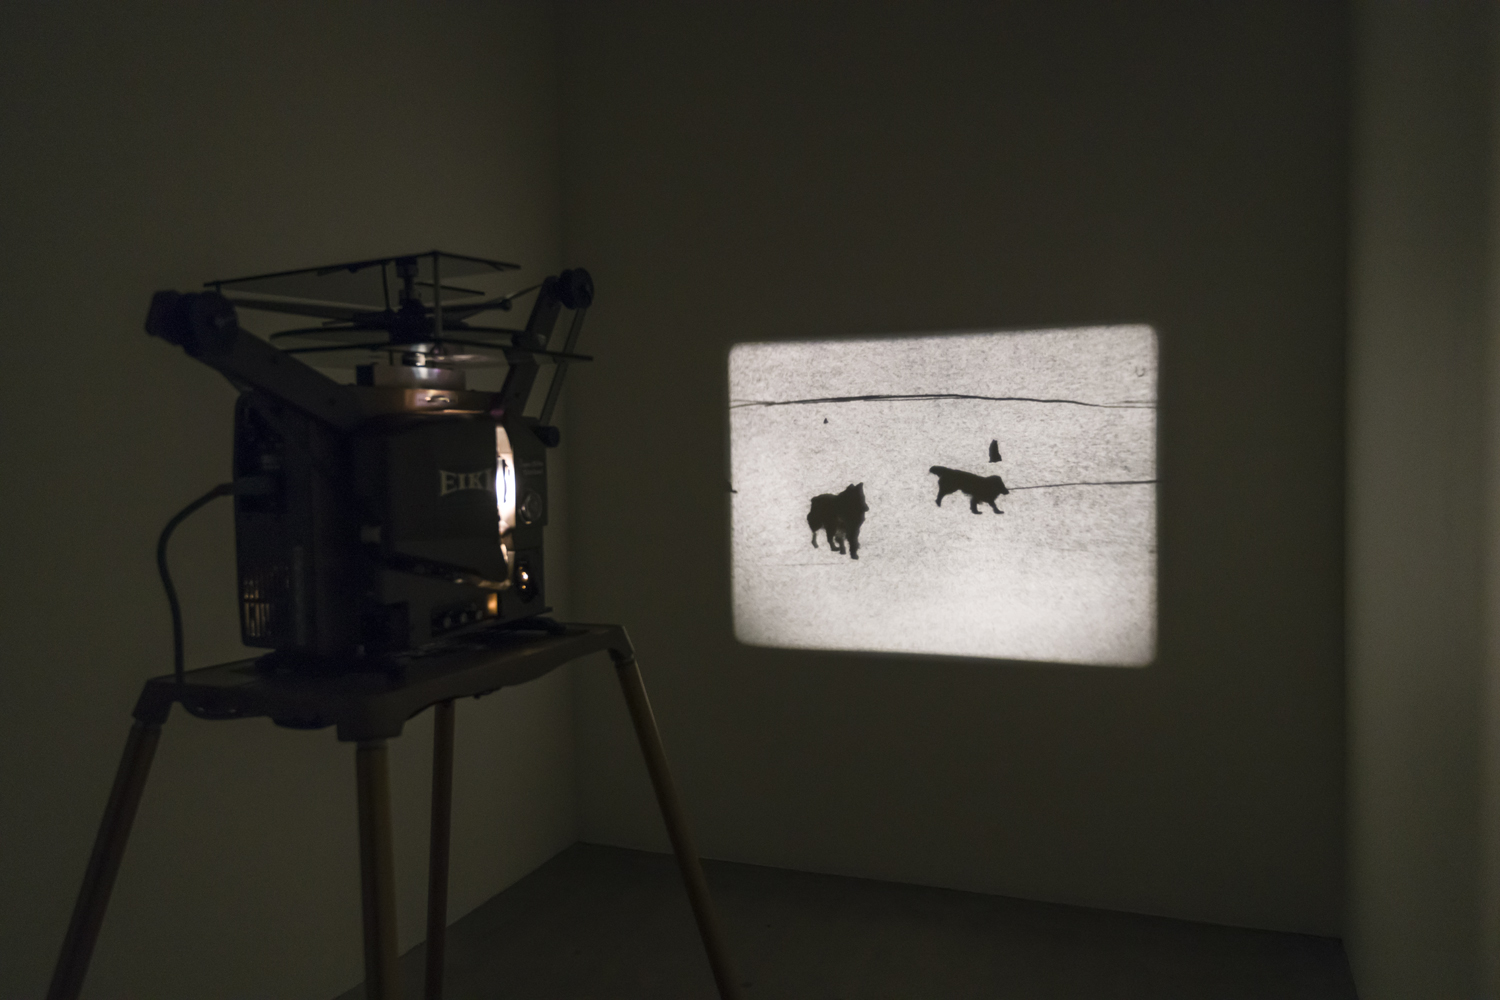 In this artwork by the artist Matthew Lax, a 16 mm video projector is playing a black and white work. The still pictured here features two dogs in the snow.